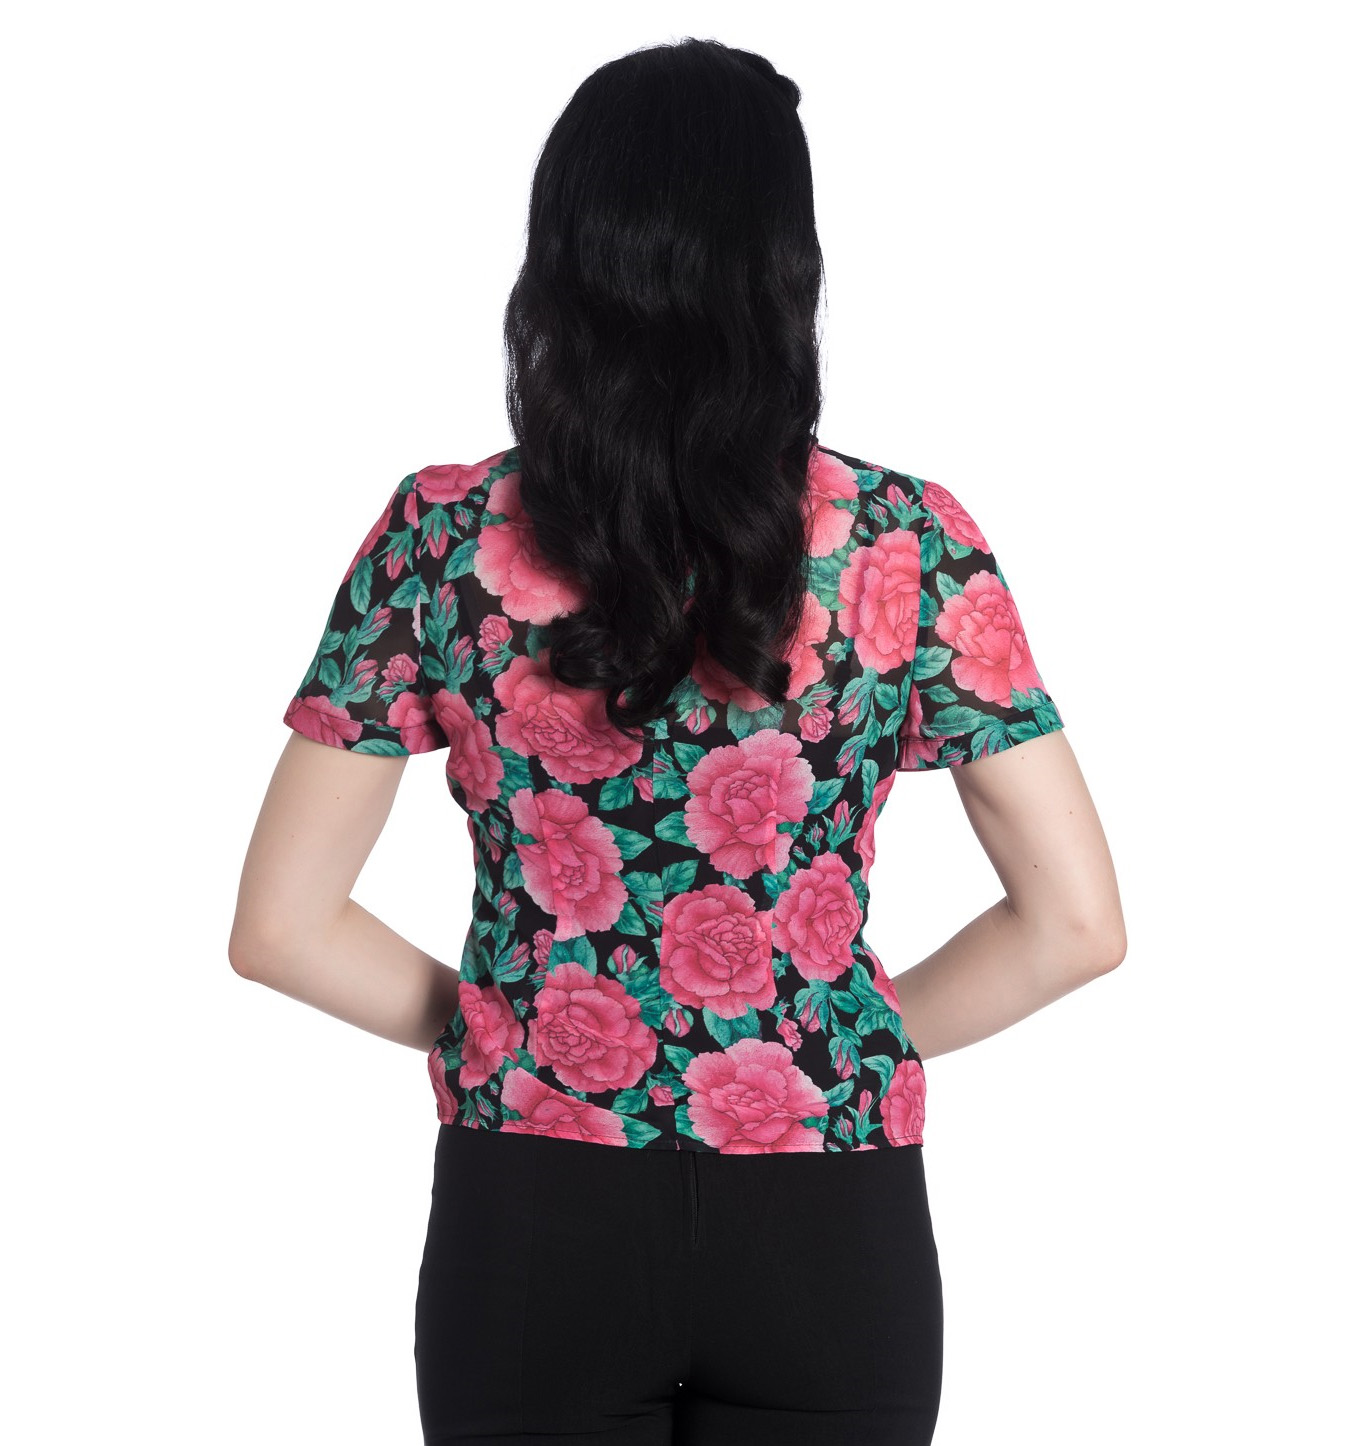 Hell-Bunny-Shirt-Top-Flowers-Roses-EDEN-ROSE-Black-Pink-Blouse-All-Sizes thumbnail 29